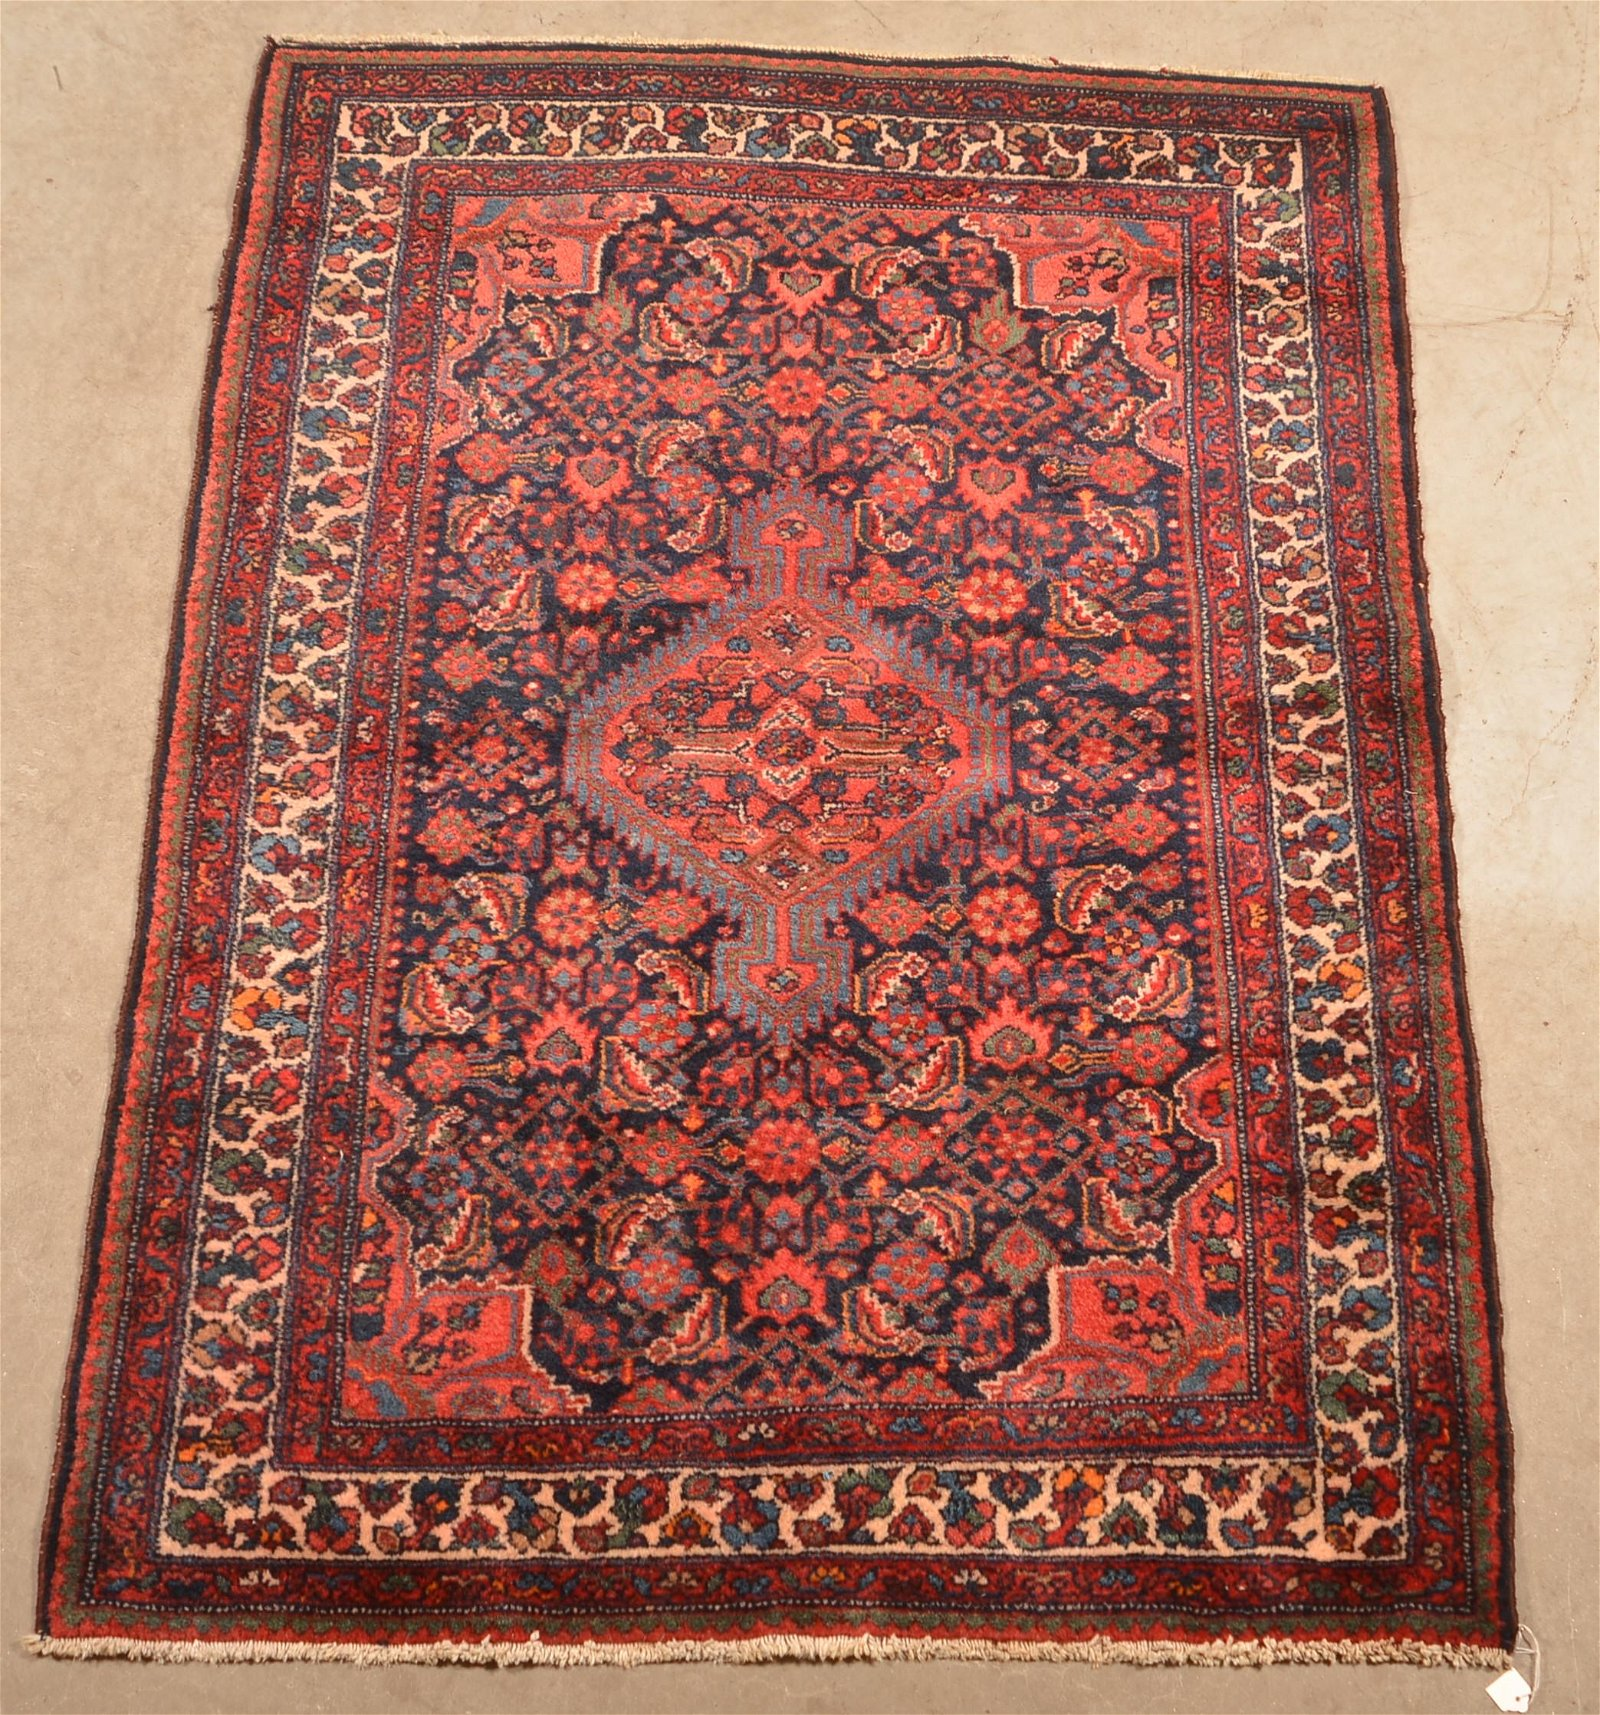 Vintage Center Medallion Pattern Oriental Area Rug.